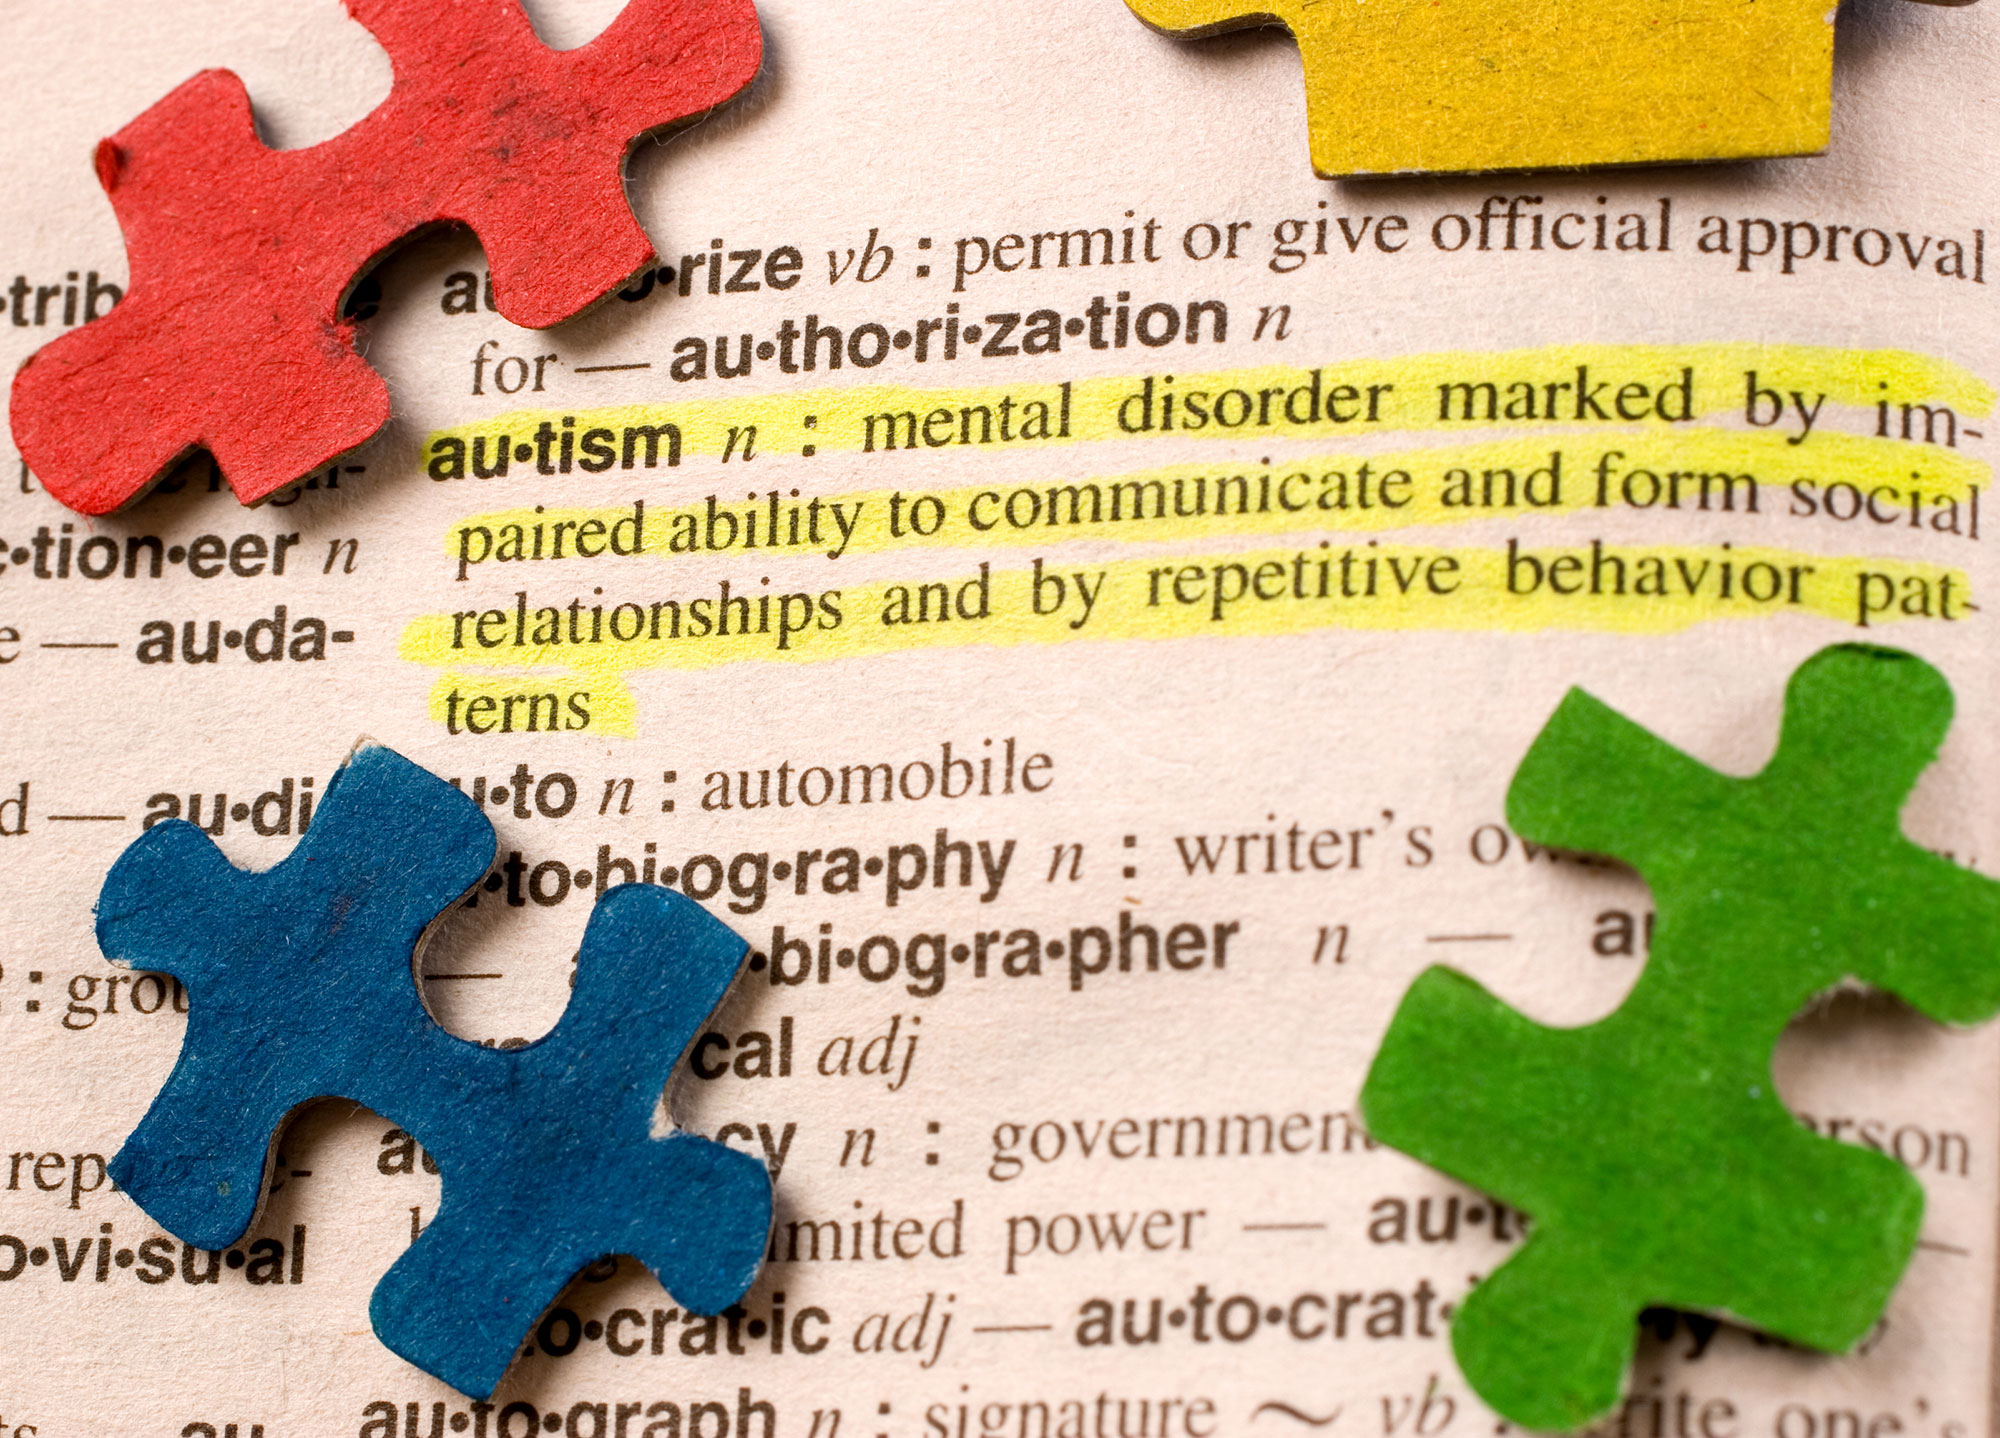 Autism Awareness Colors And Symbols And What They Mean